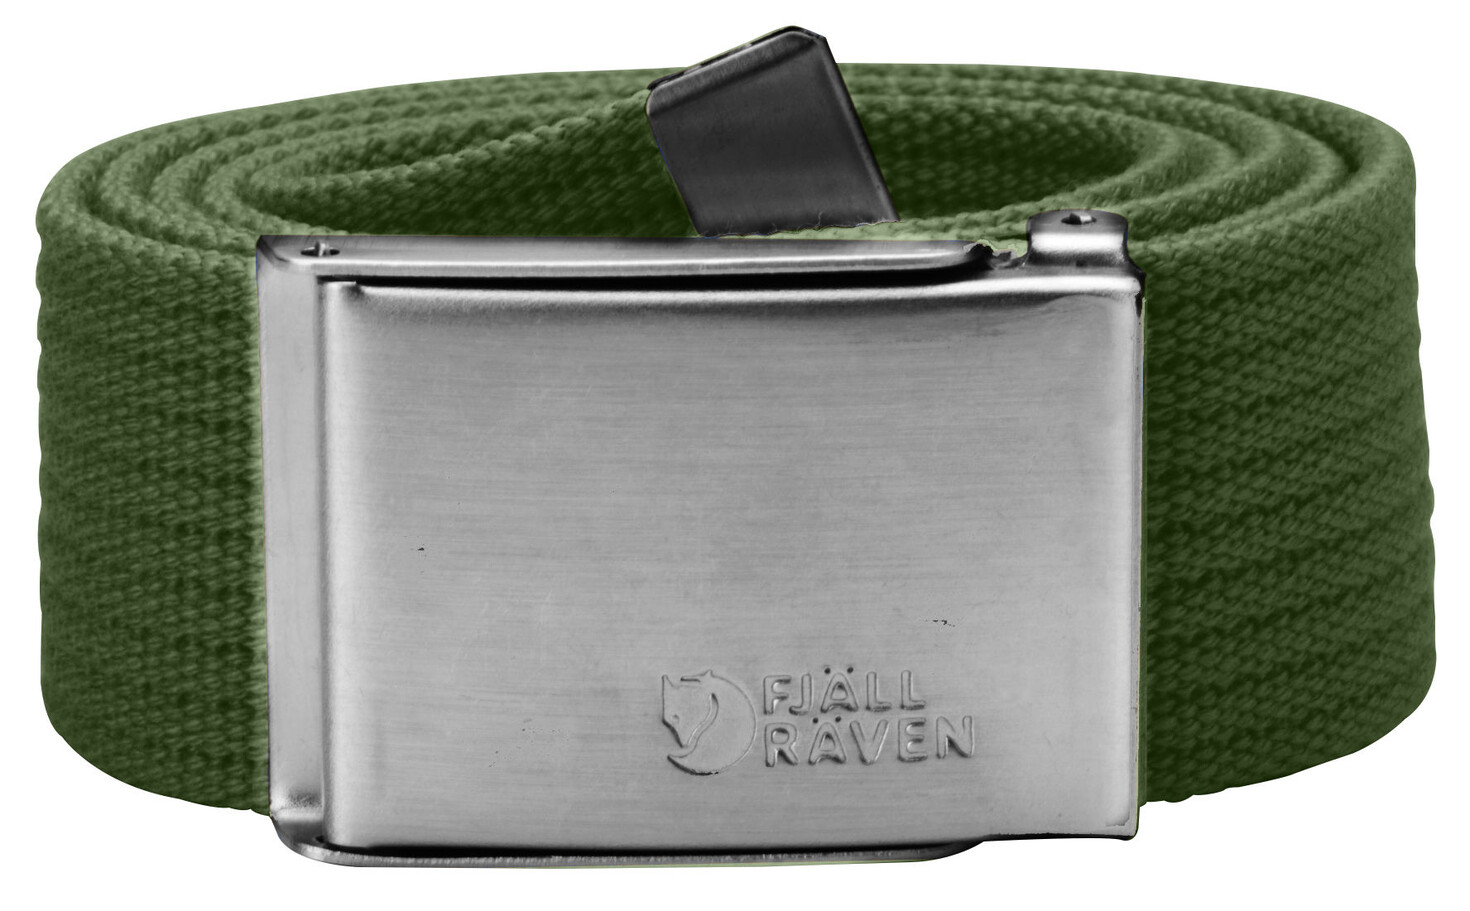 Fjällräven Canvas Belt pine green One Size Accessoires~outdoor~bekleidung~outdoorbekleidung~Outdoor gürtel